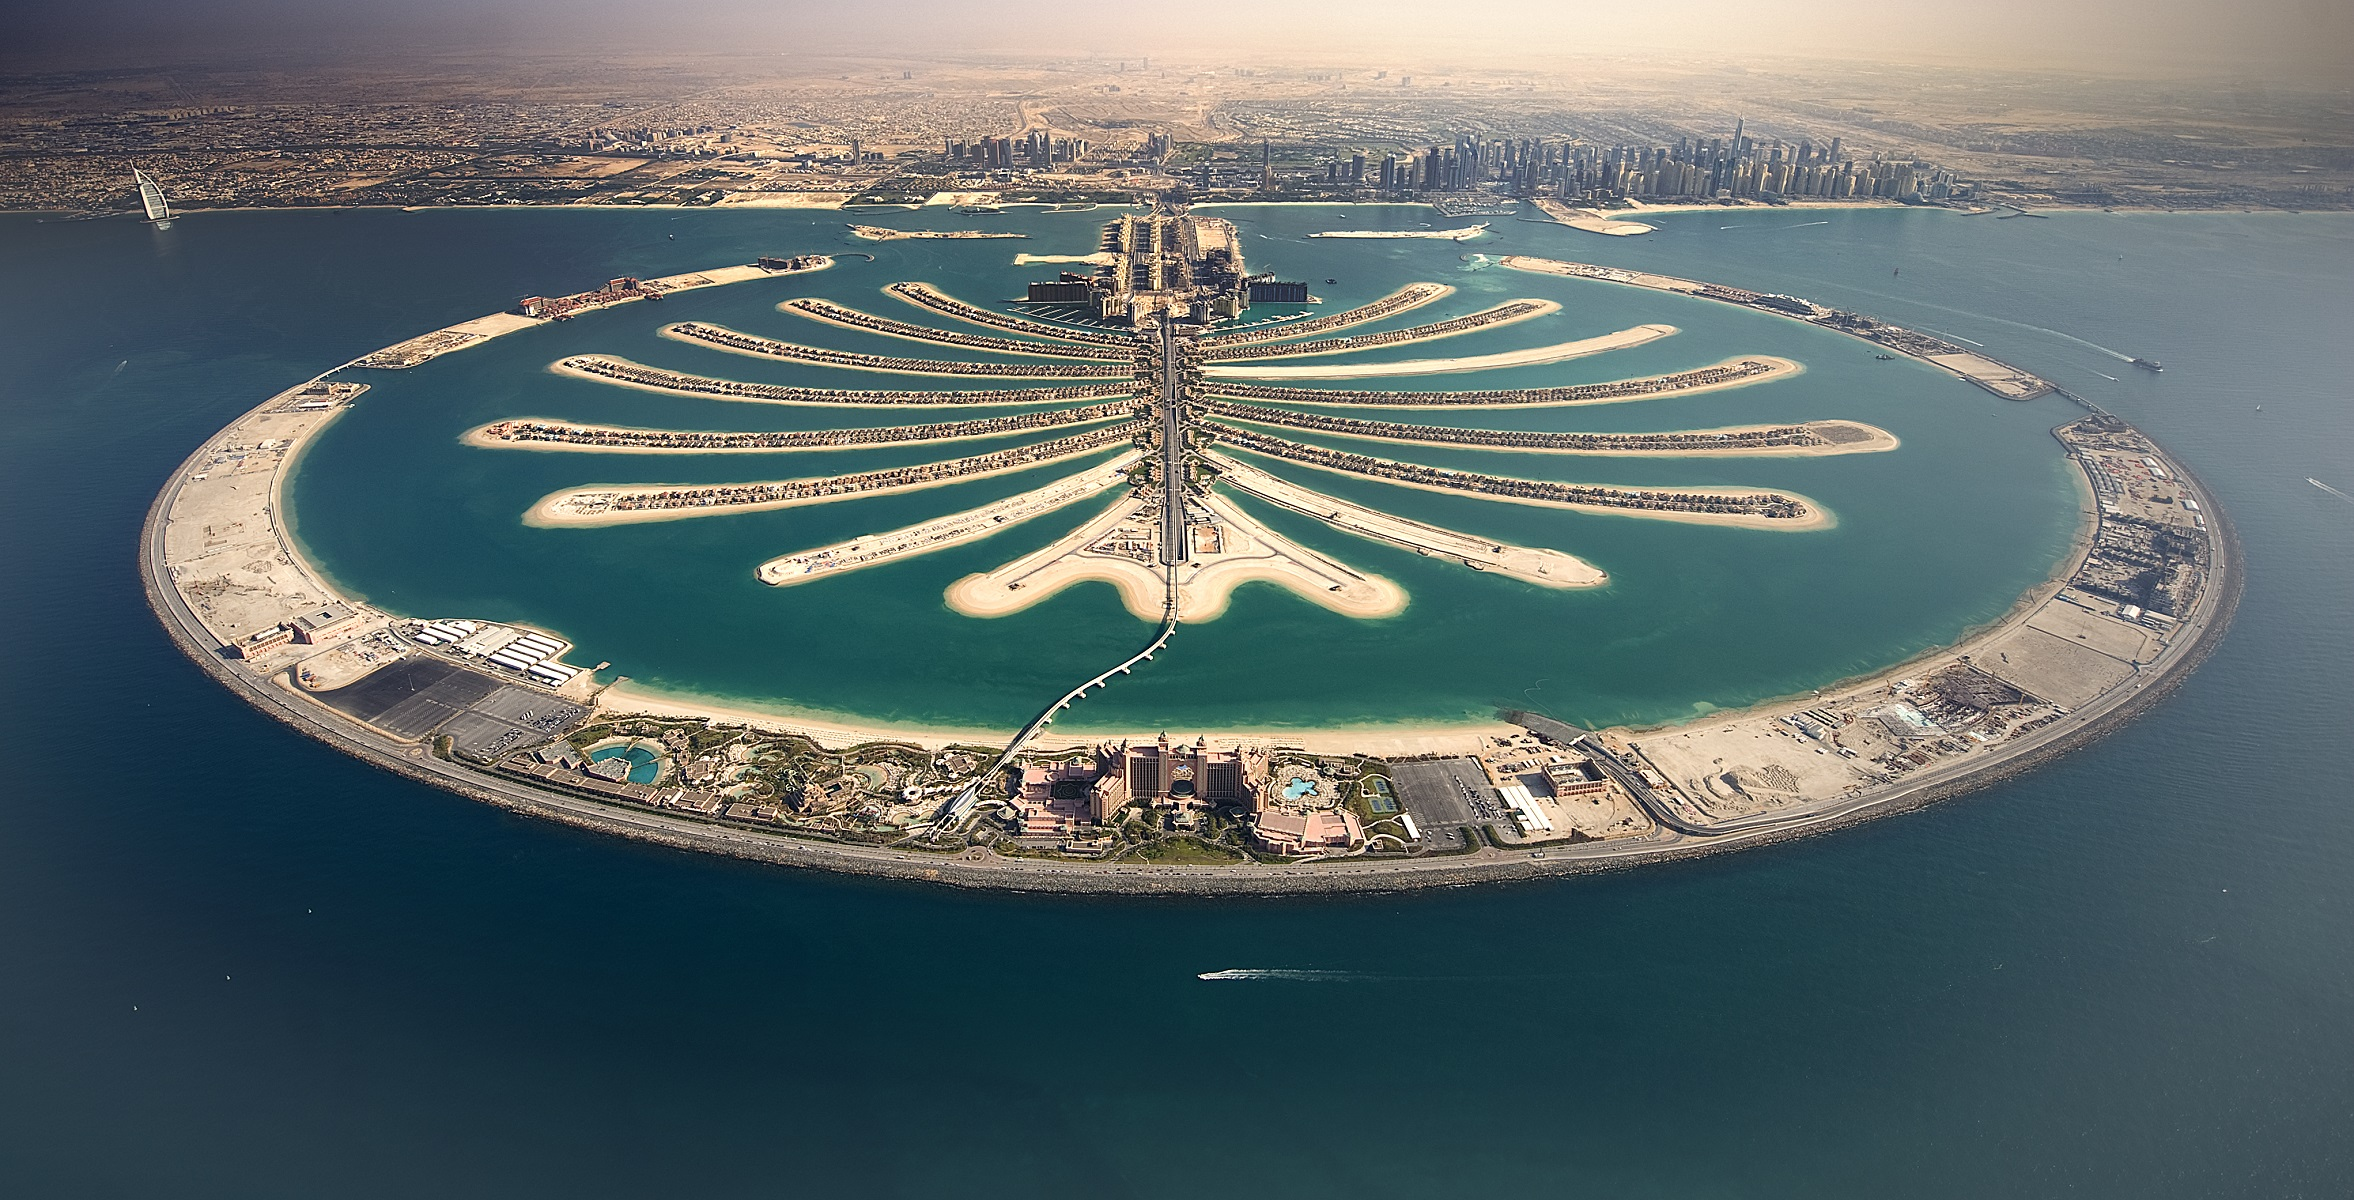 Dubai - Palm-Jumeirah-United-Arab-Emirates.jpg